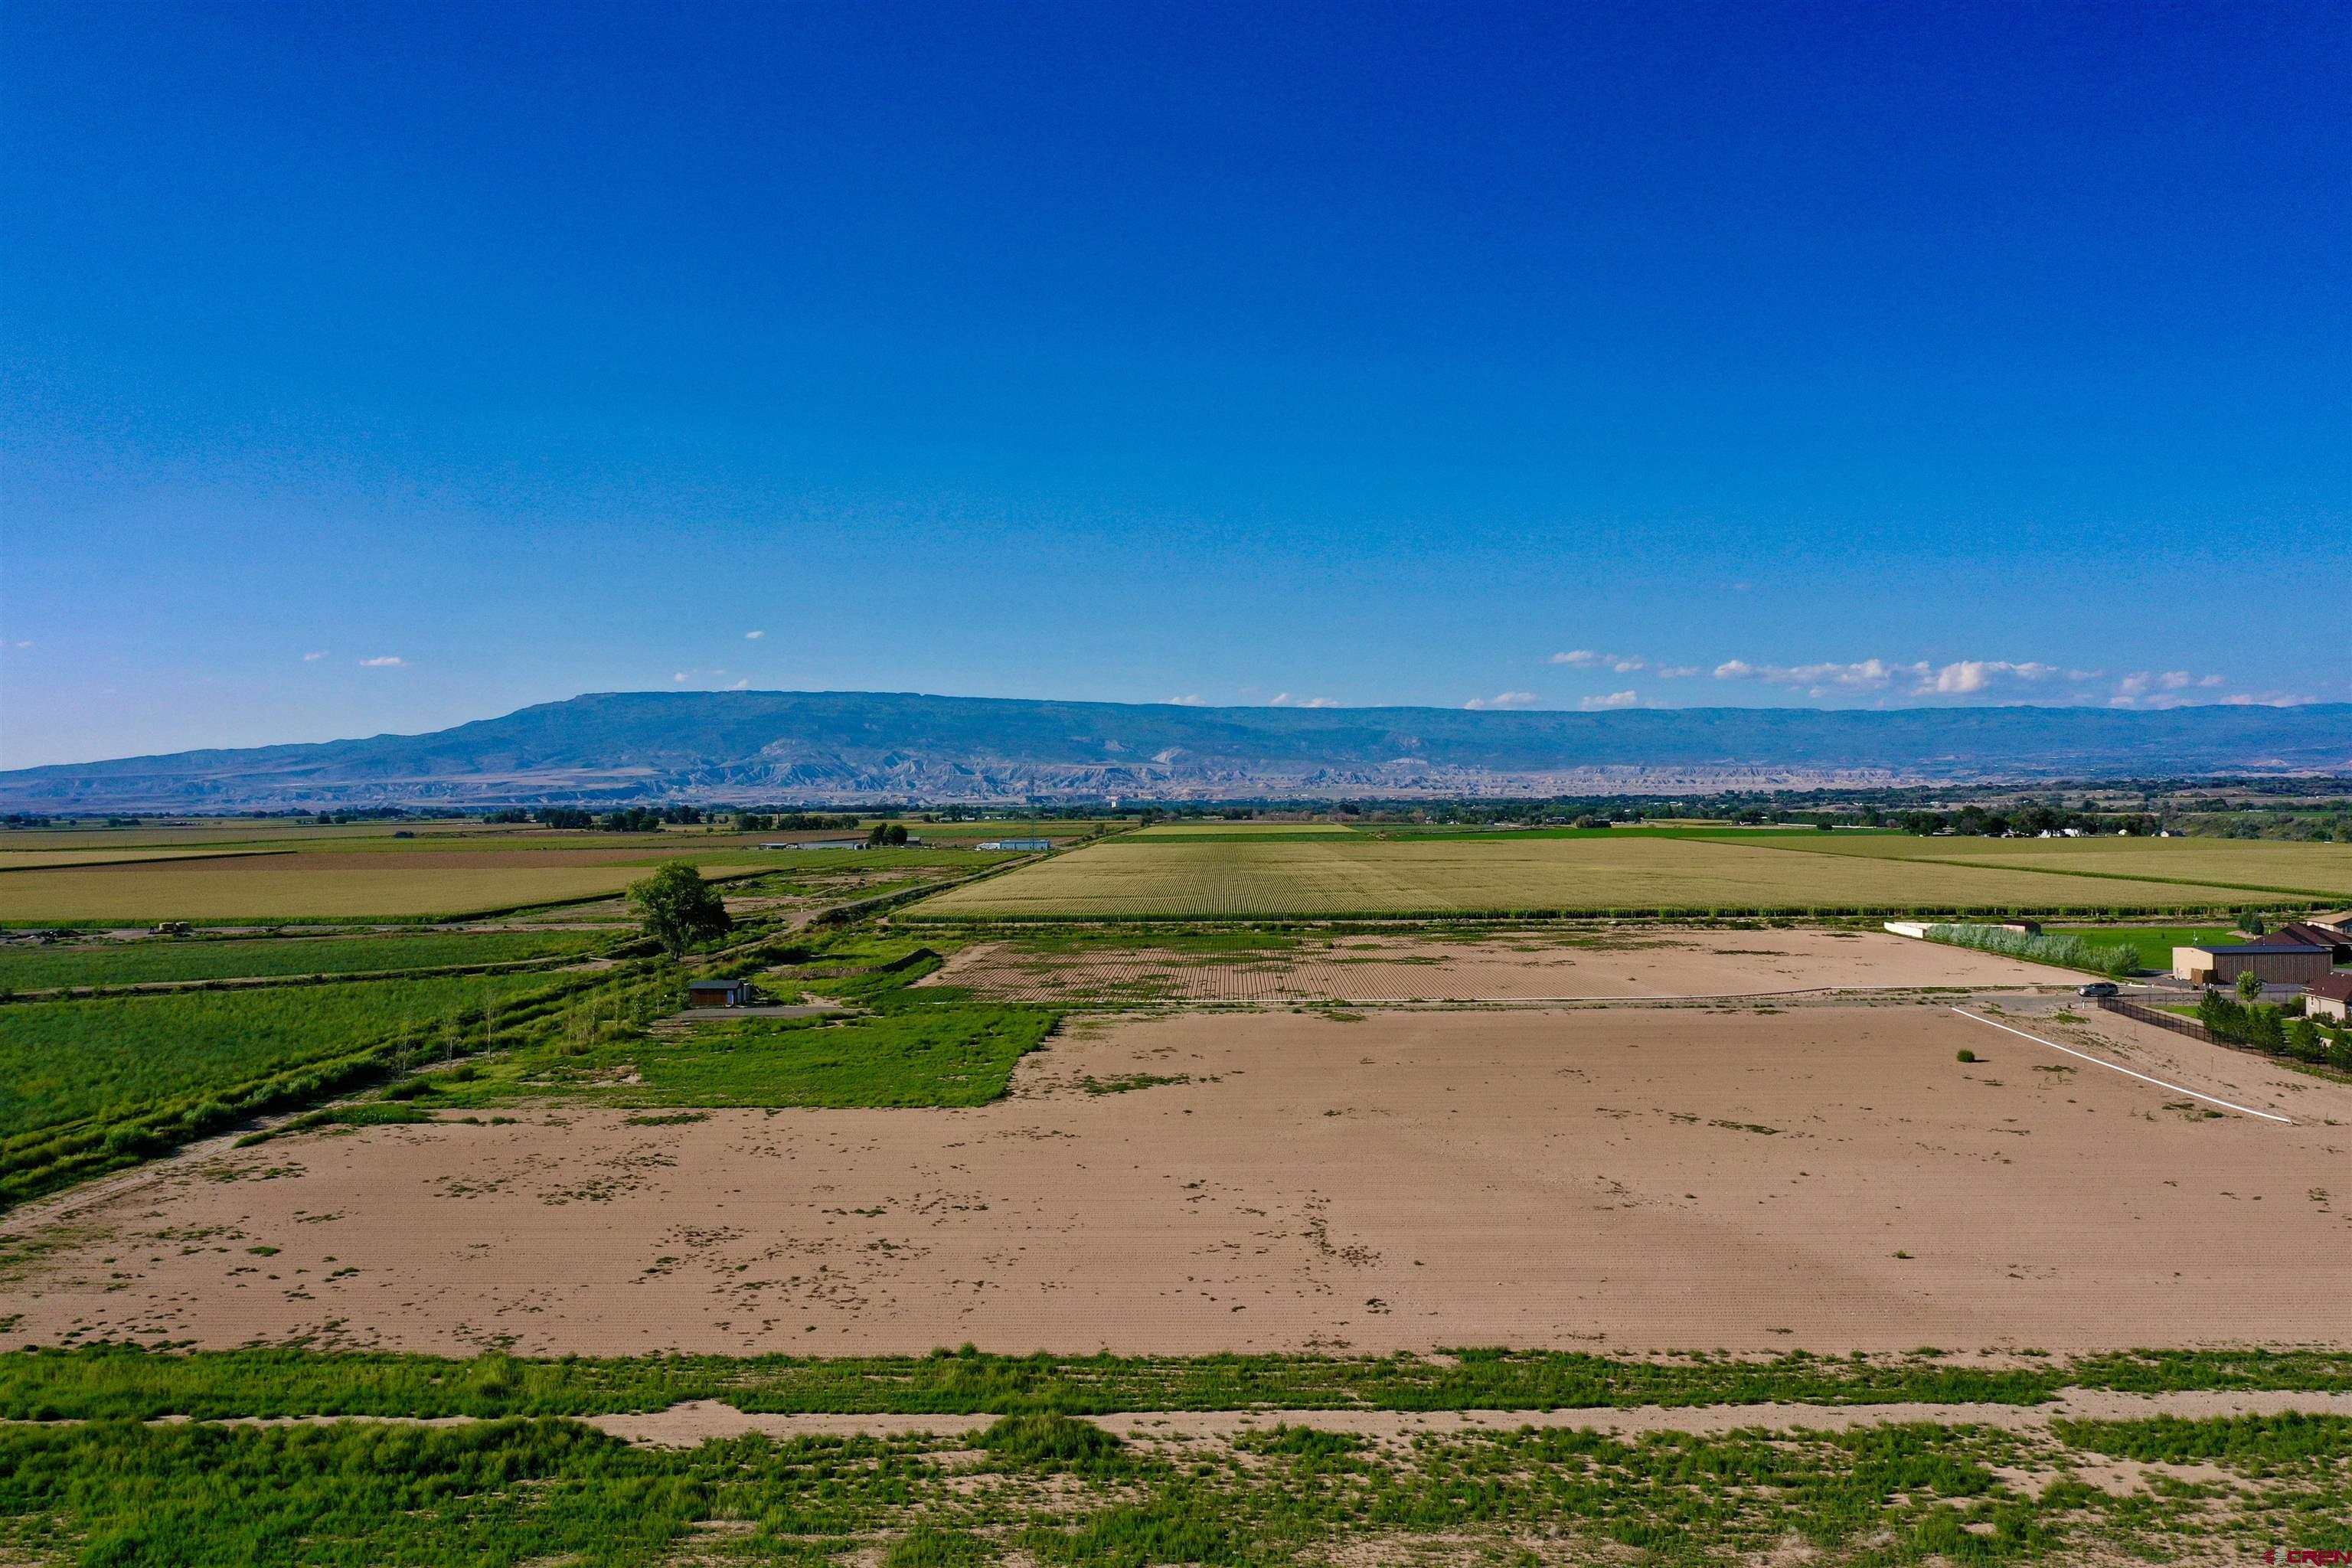 An amazing 19.5 acre parcel!! This property has fantastic improvements that have already been made, including a paid and installed domestic water tap, power run on to the property, an engineered septic plan, a 700+ foot driveway, multiple alfalfa valves, 19.5 shares of UVWUA irrigation water and more. The views from this property are 360*!! Come build your dream home on irrigated acreage on the highly desirable California Mesa, or consider subdividing. With fertile ground and all of the infrastructure ready for construction, this property is a true Western Colorado gem. Come see all that this one has to offer!